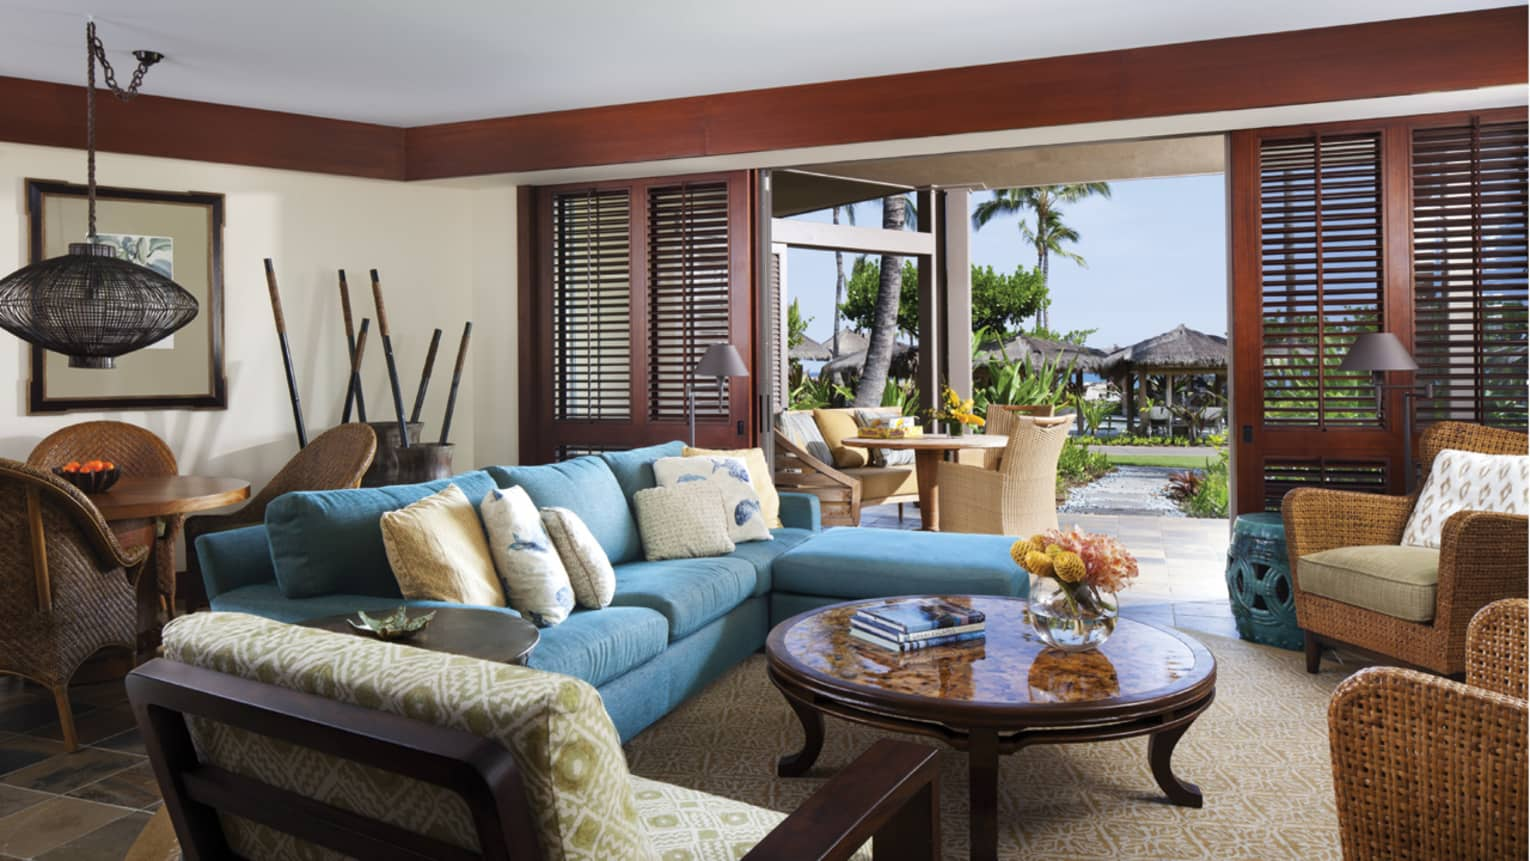 'Ohana Suite L-shaped blue sofa, chairs around table, open wood shutters to patio